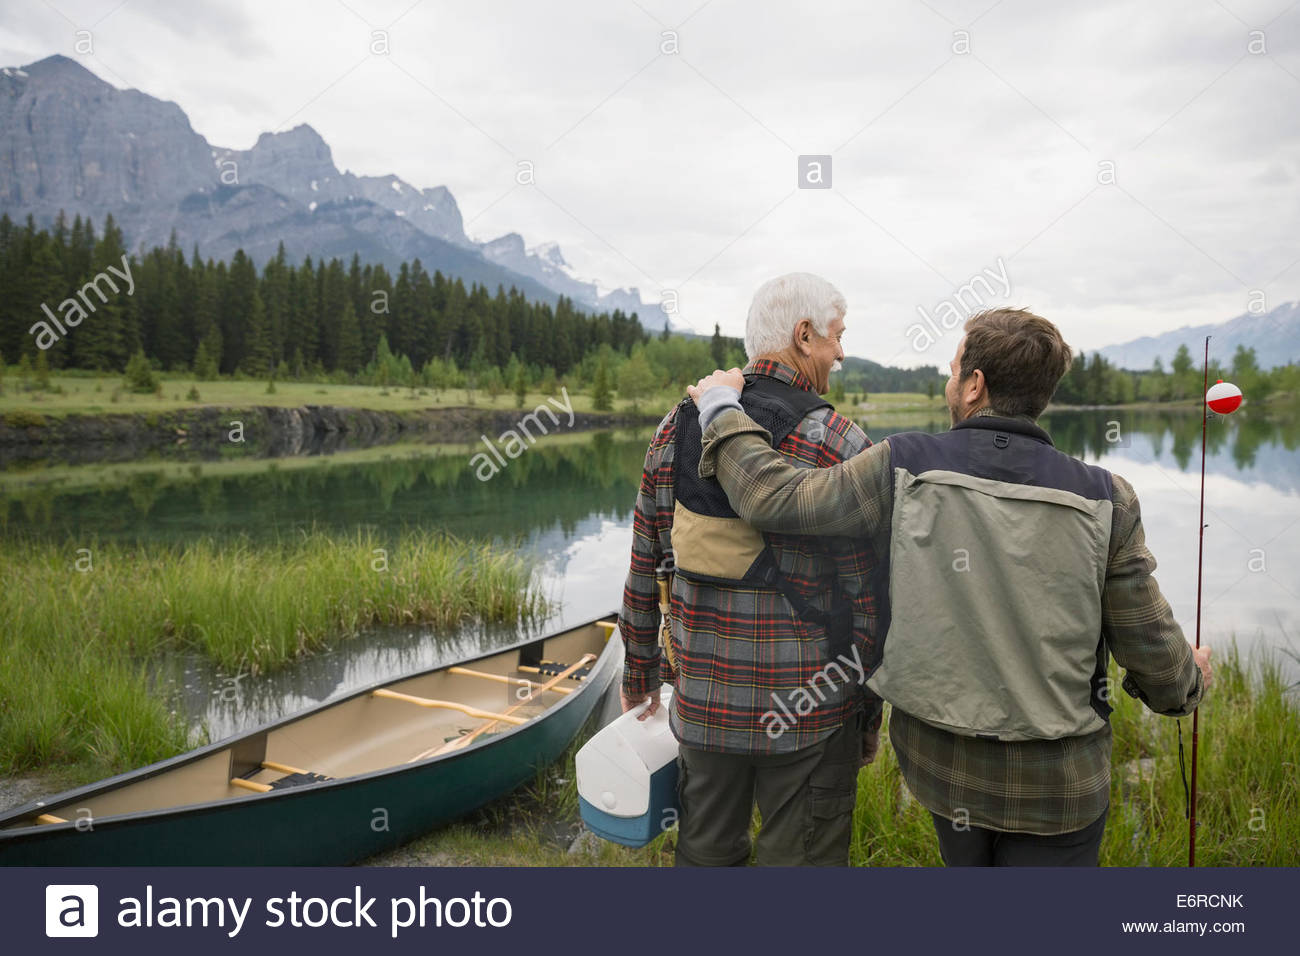 Father and son overlooking still lake - Stock Image